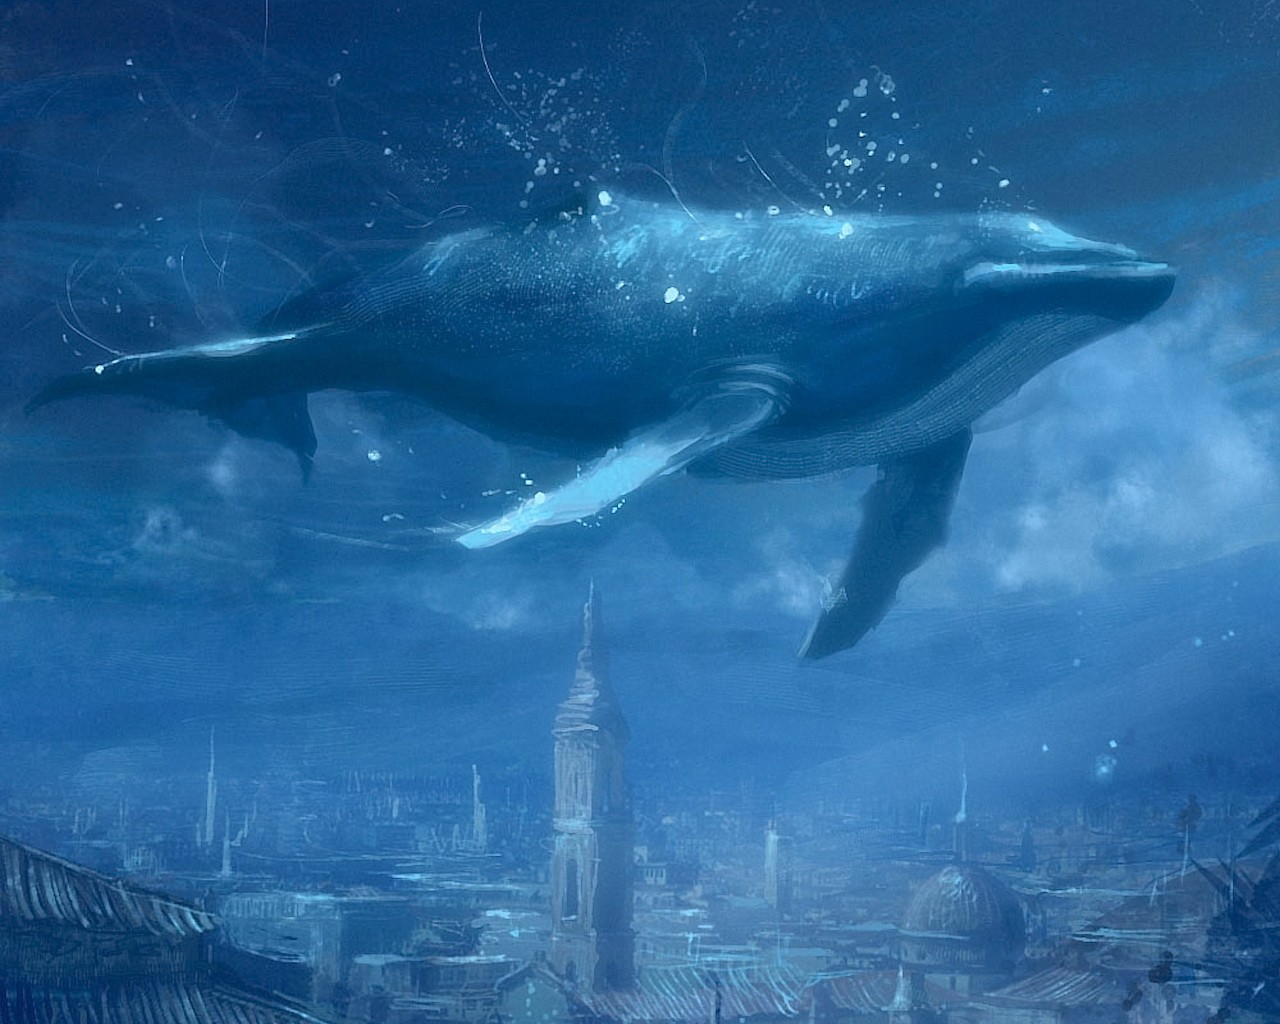 Drawn wallpaper whale The Drawing Blue 156 156